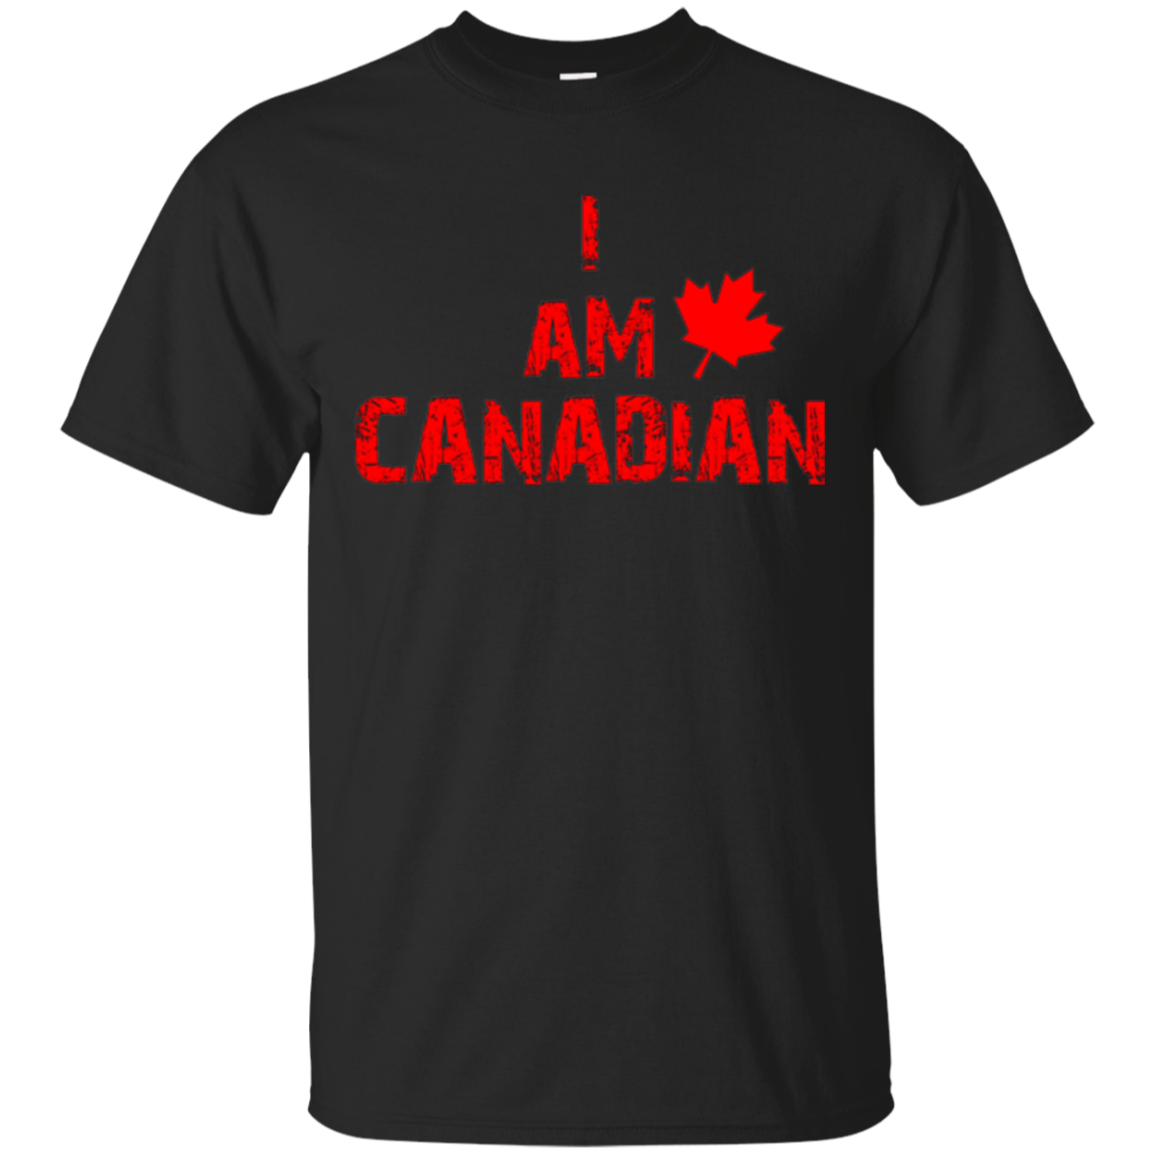 Canada 150 I am Canadian Celebrate Canadian Heritage T-Shirt